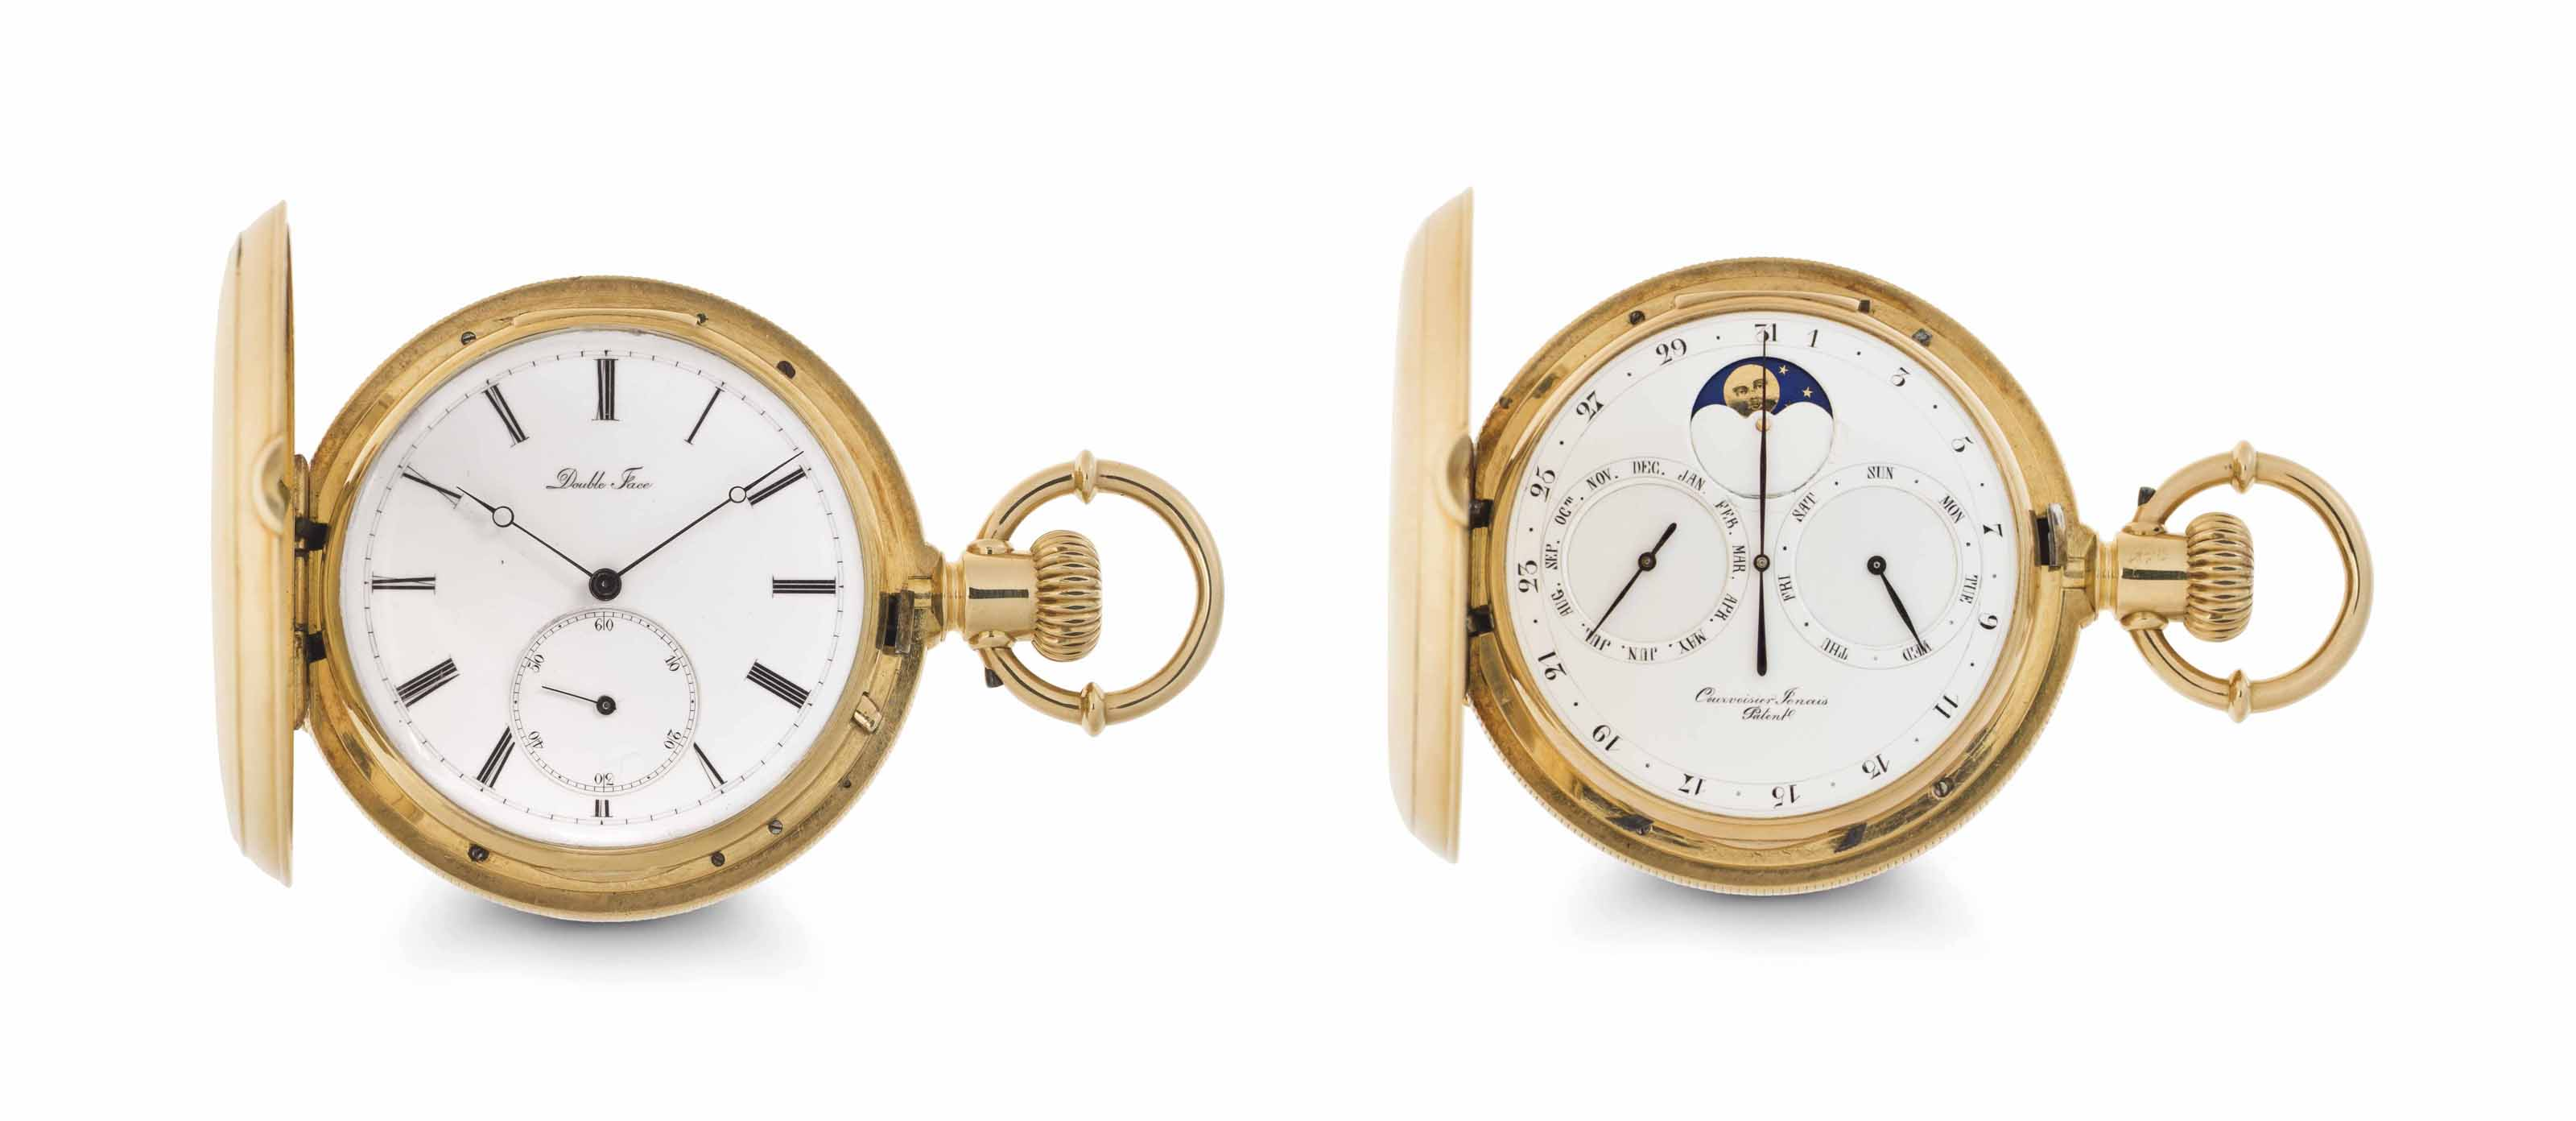 Courvoisier. A Fine and Rare 18k Gold Hunter Case Double Dial Keyless Lever Watch with Day, Date, Month and Moon Phases in An American Case